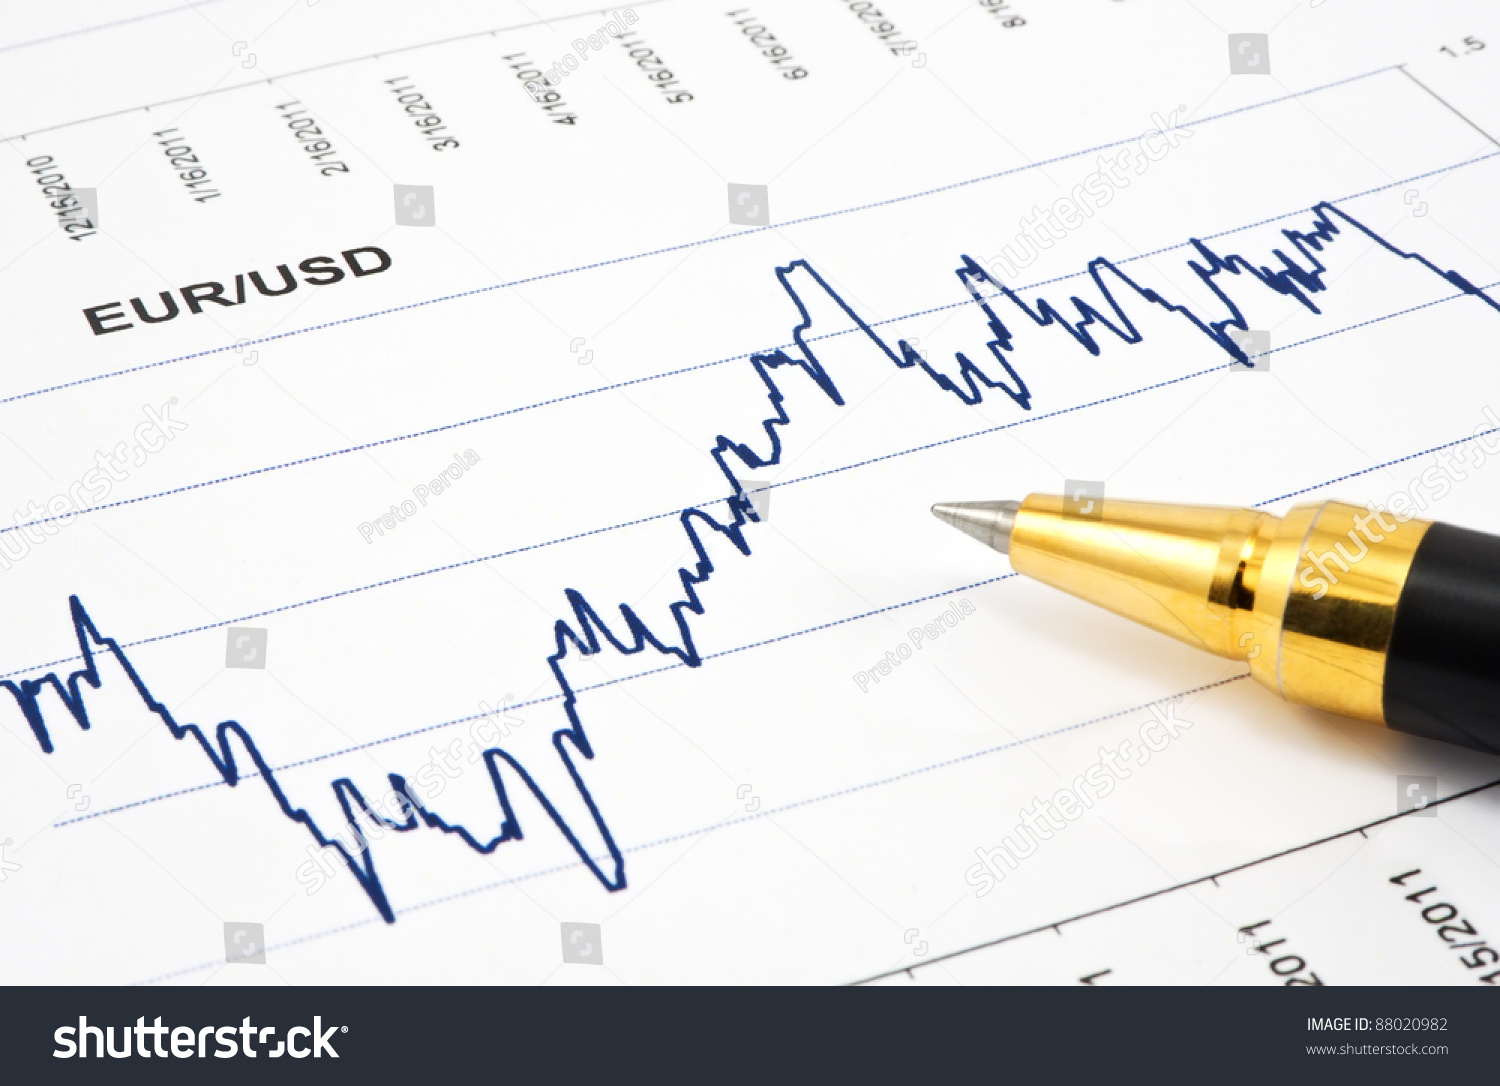 Business Background Financial Chart Ballpoint Pen Stock Photo Edit Each Includes 1 Ball Point And Fountain As The Diagram With